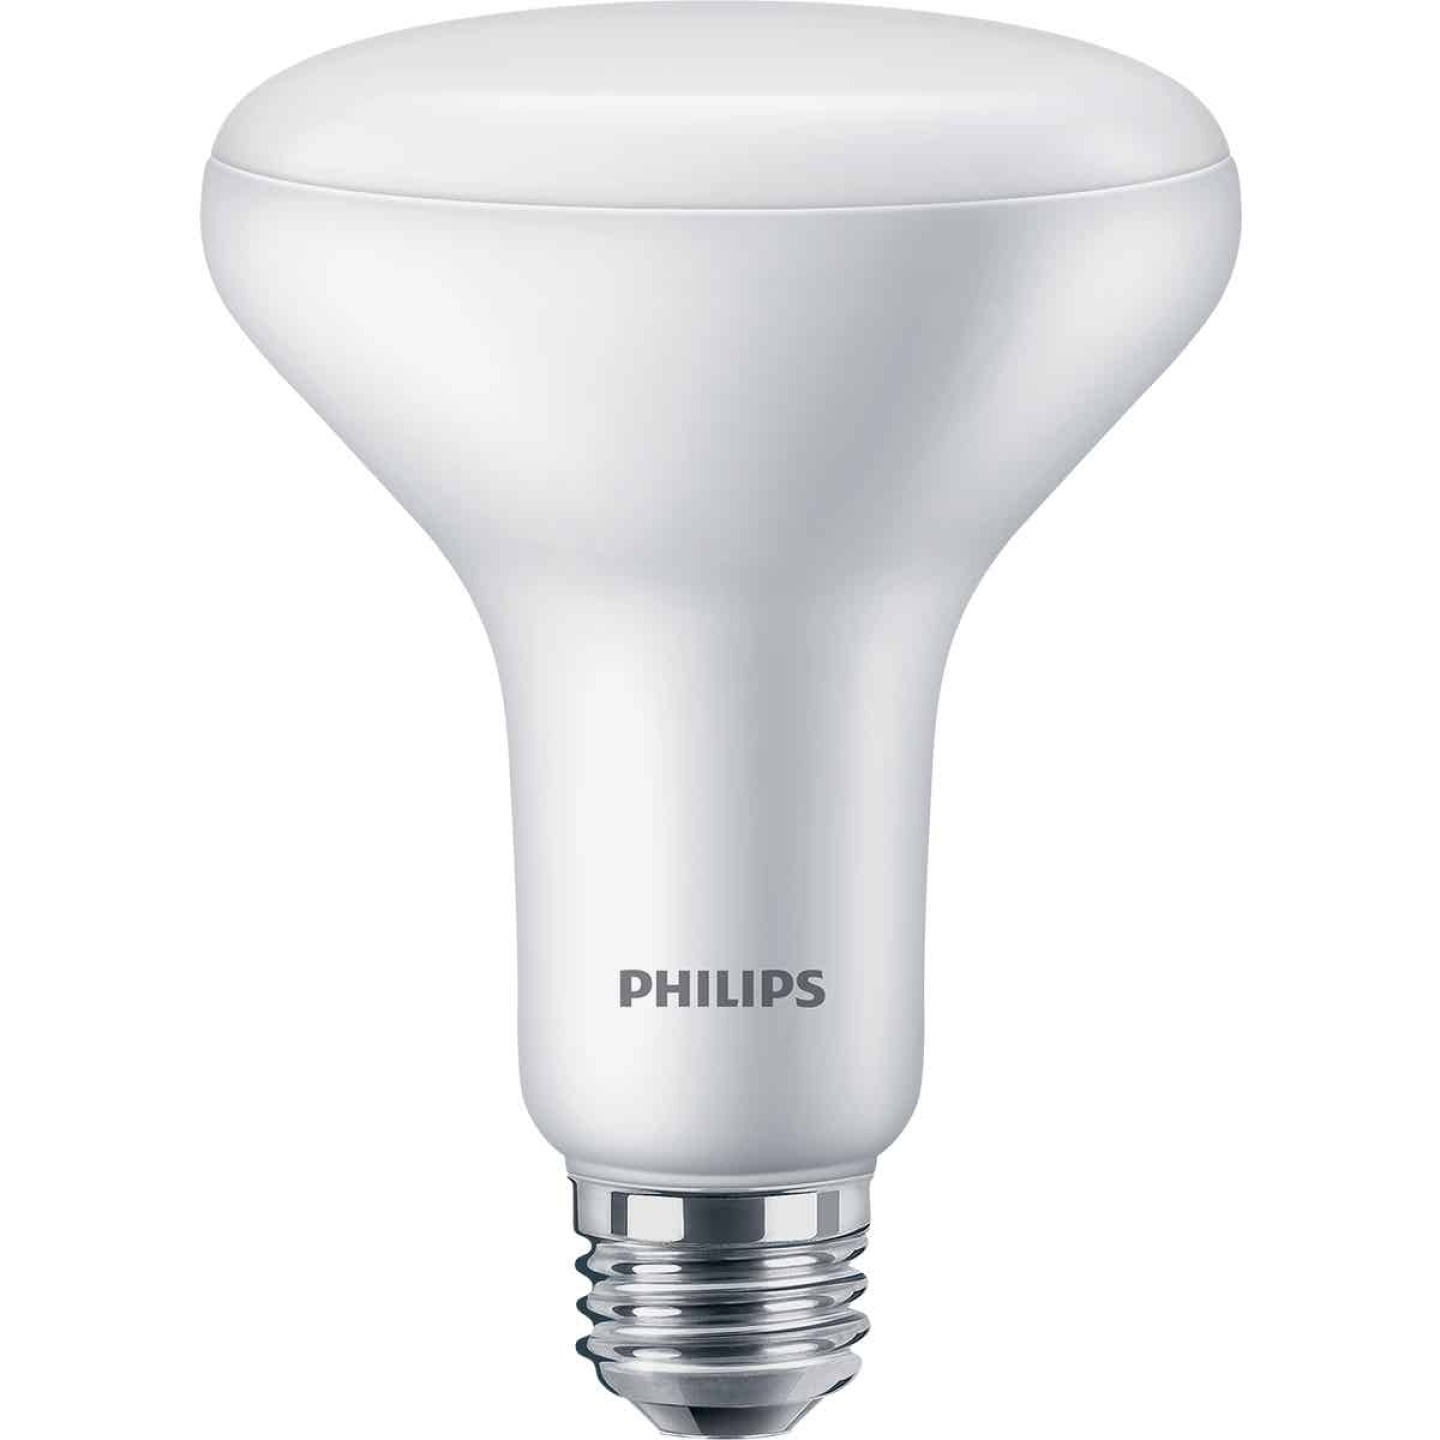 Philips Warm Glow 65W Equivalent Soft White BR30 Medium Dimmable LED Floodlight Light Bulb (3-Pack) Image 2